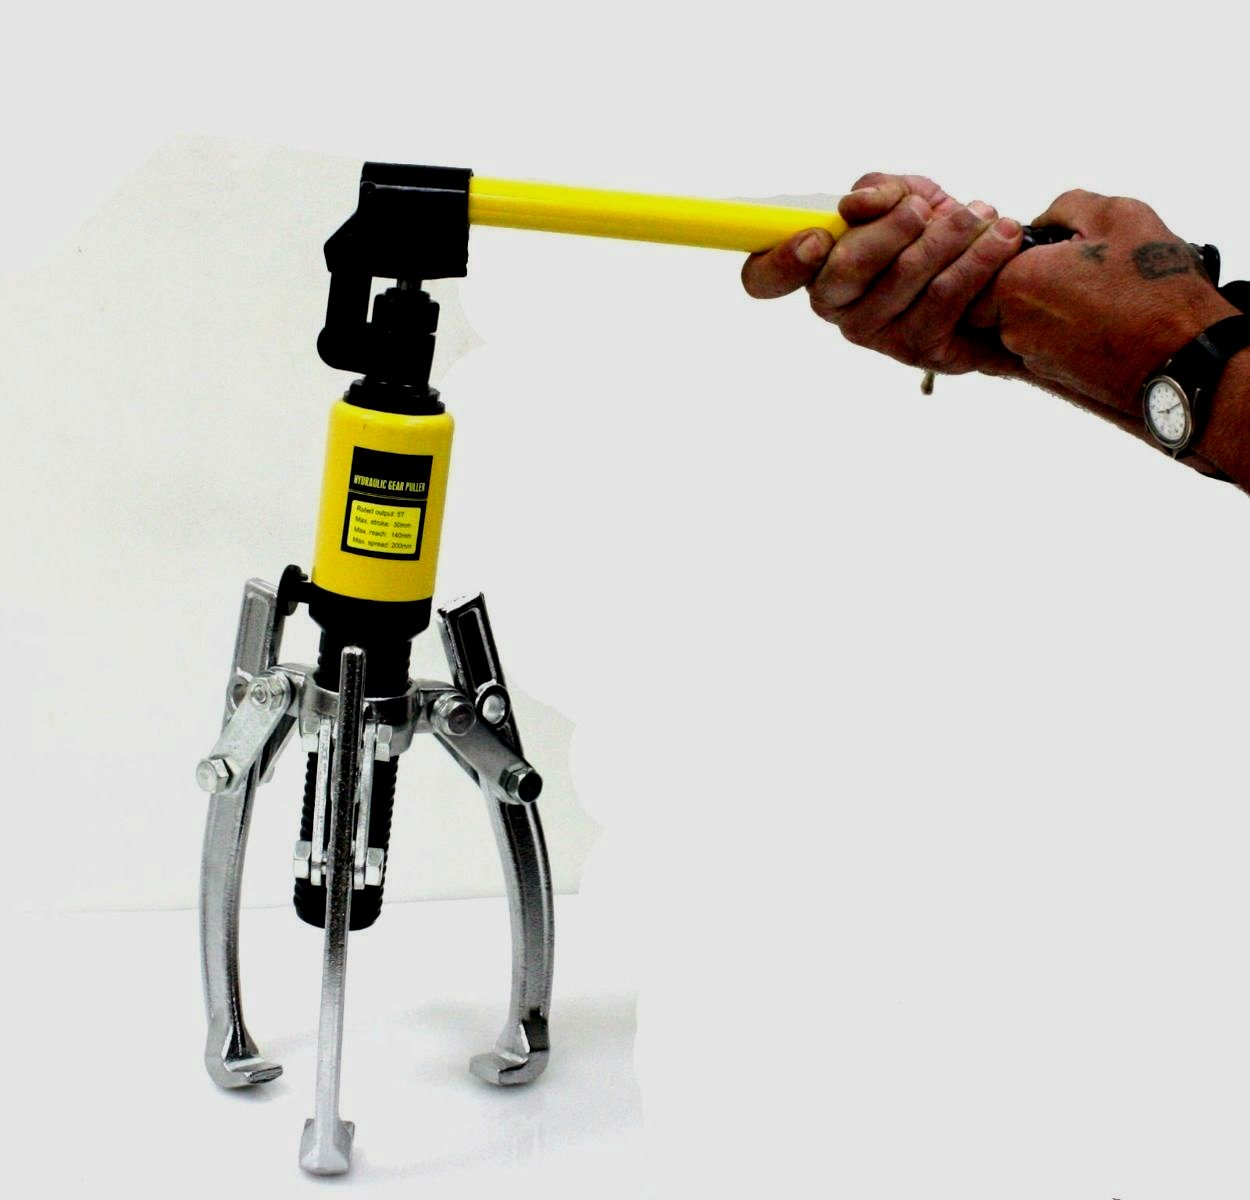 Wheel Bearing Puller Claw Yellow Steel Extra Strength 5 Ton Capacity Hydraulic Gear 2 Or 3 Reversible Jaws With Travel Case - Skroutz